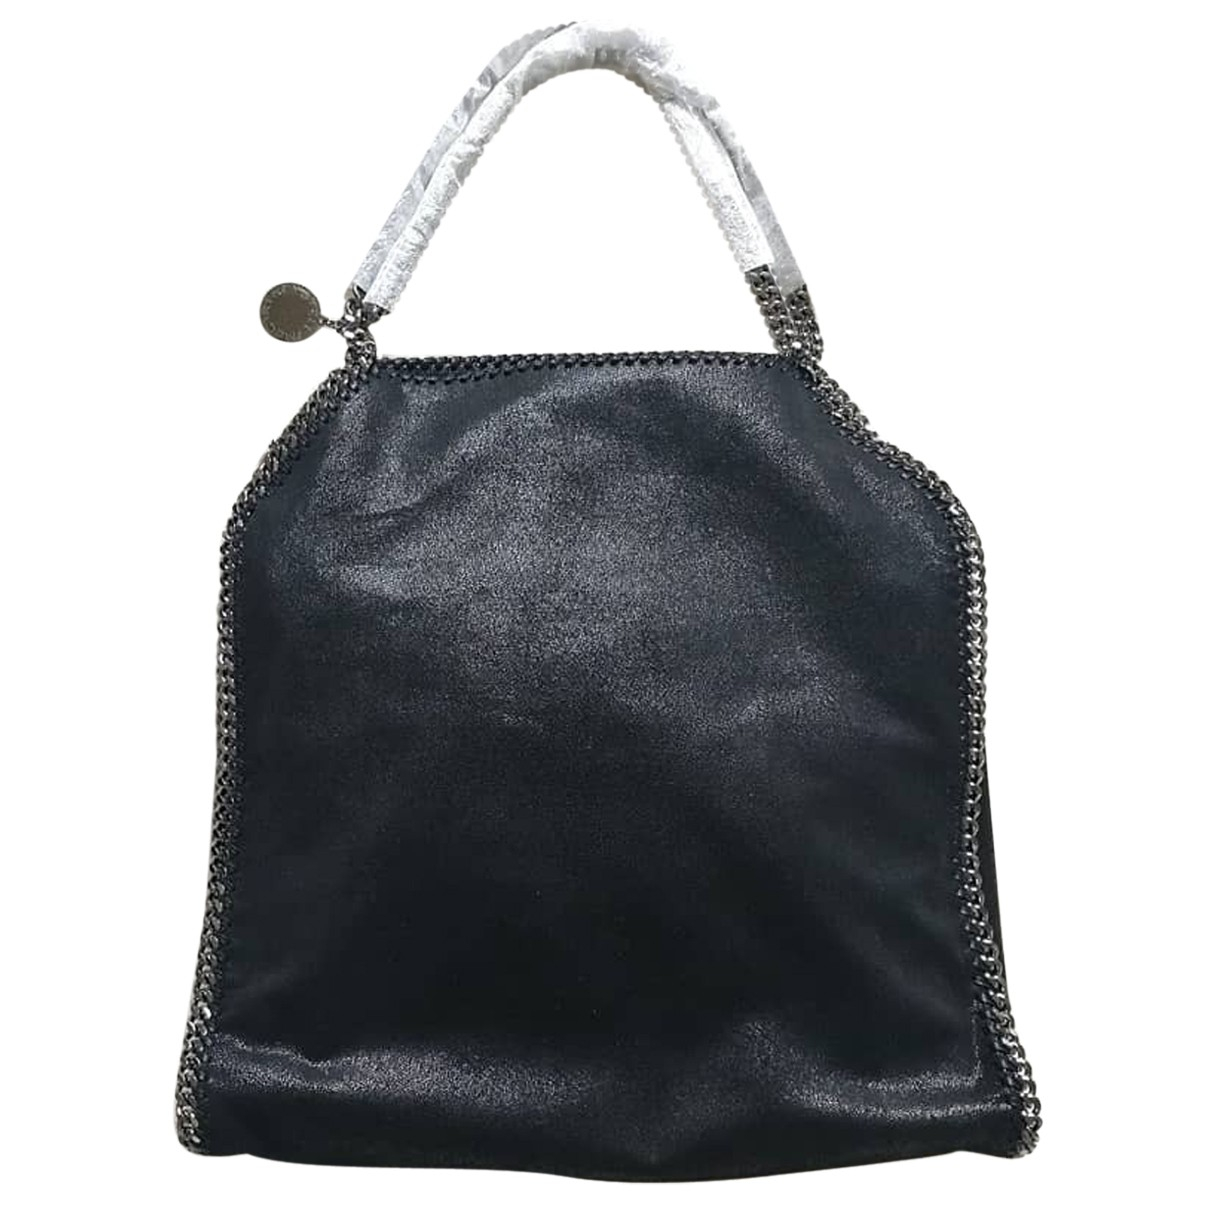 Stella Mccartney Falabella Black handbag for Women N